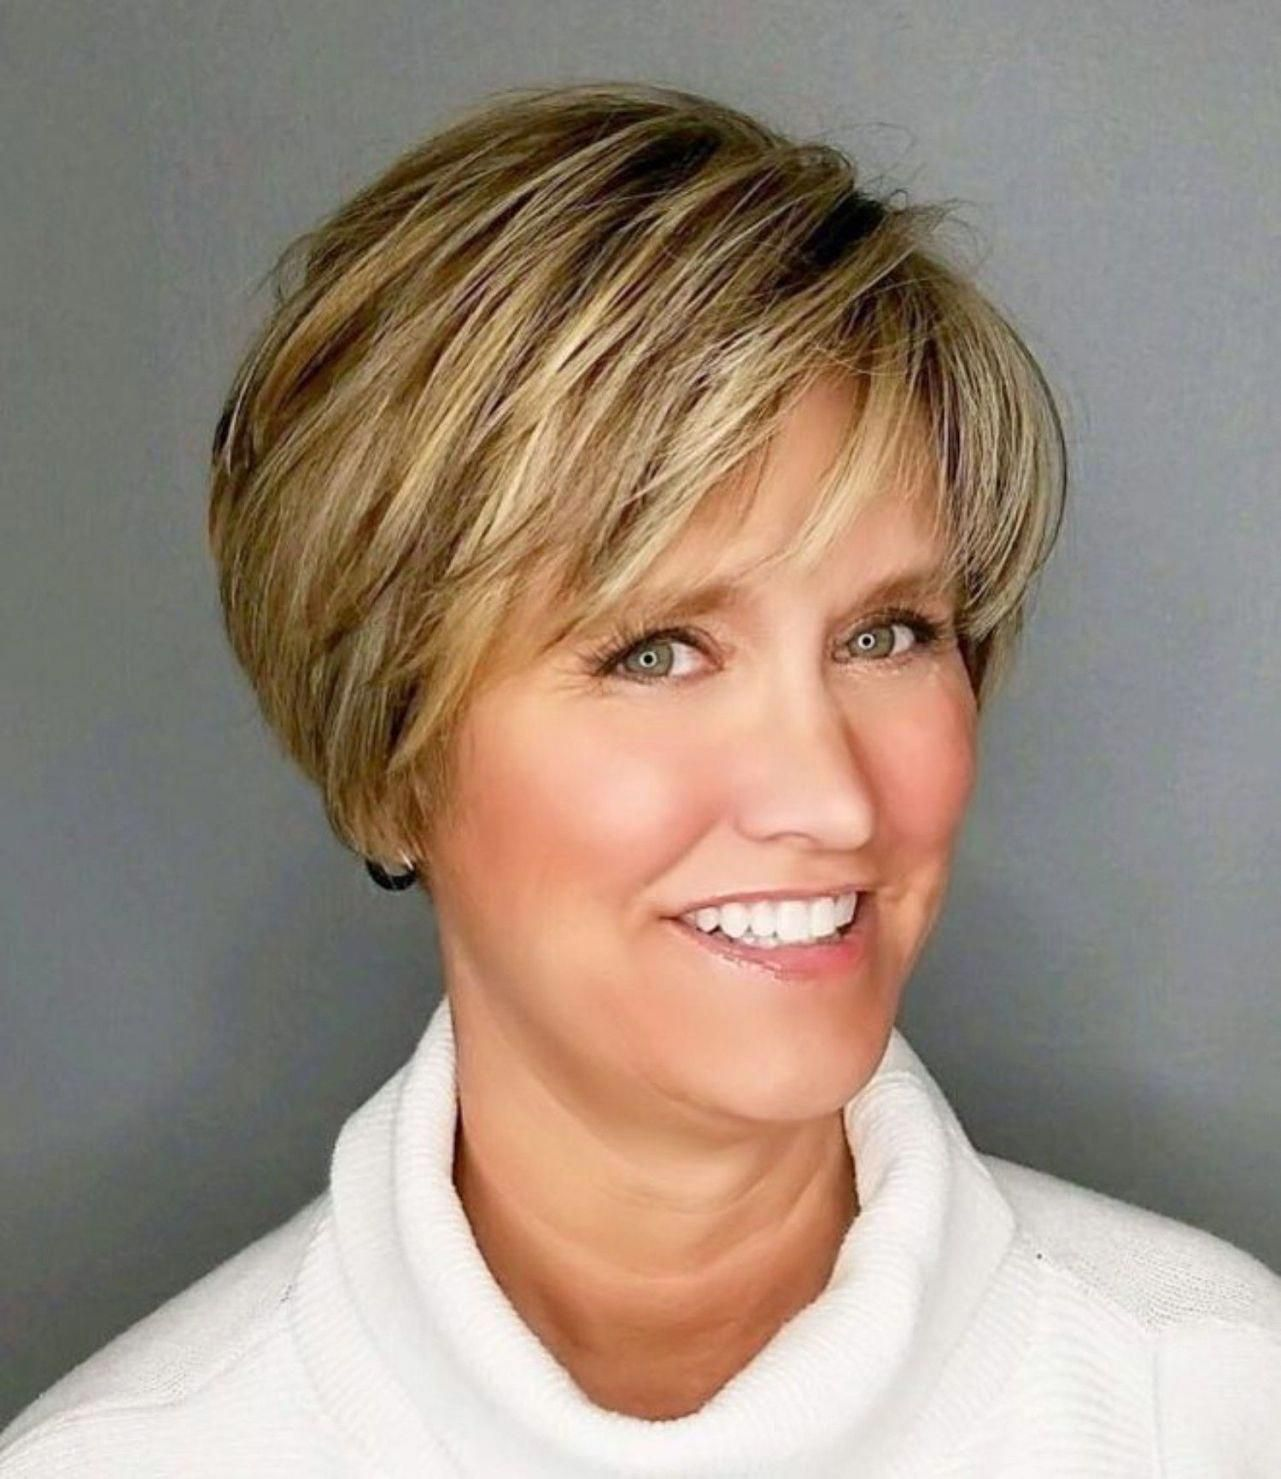 Pin On Short Hairstyles For Women